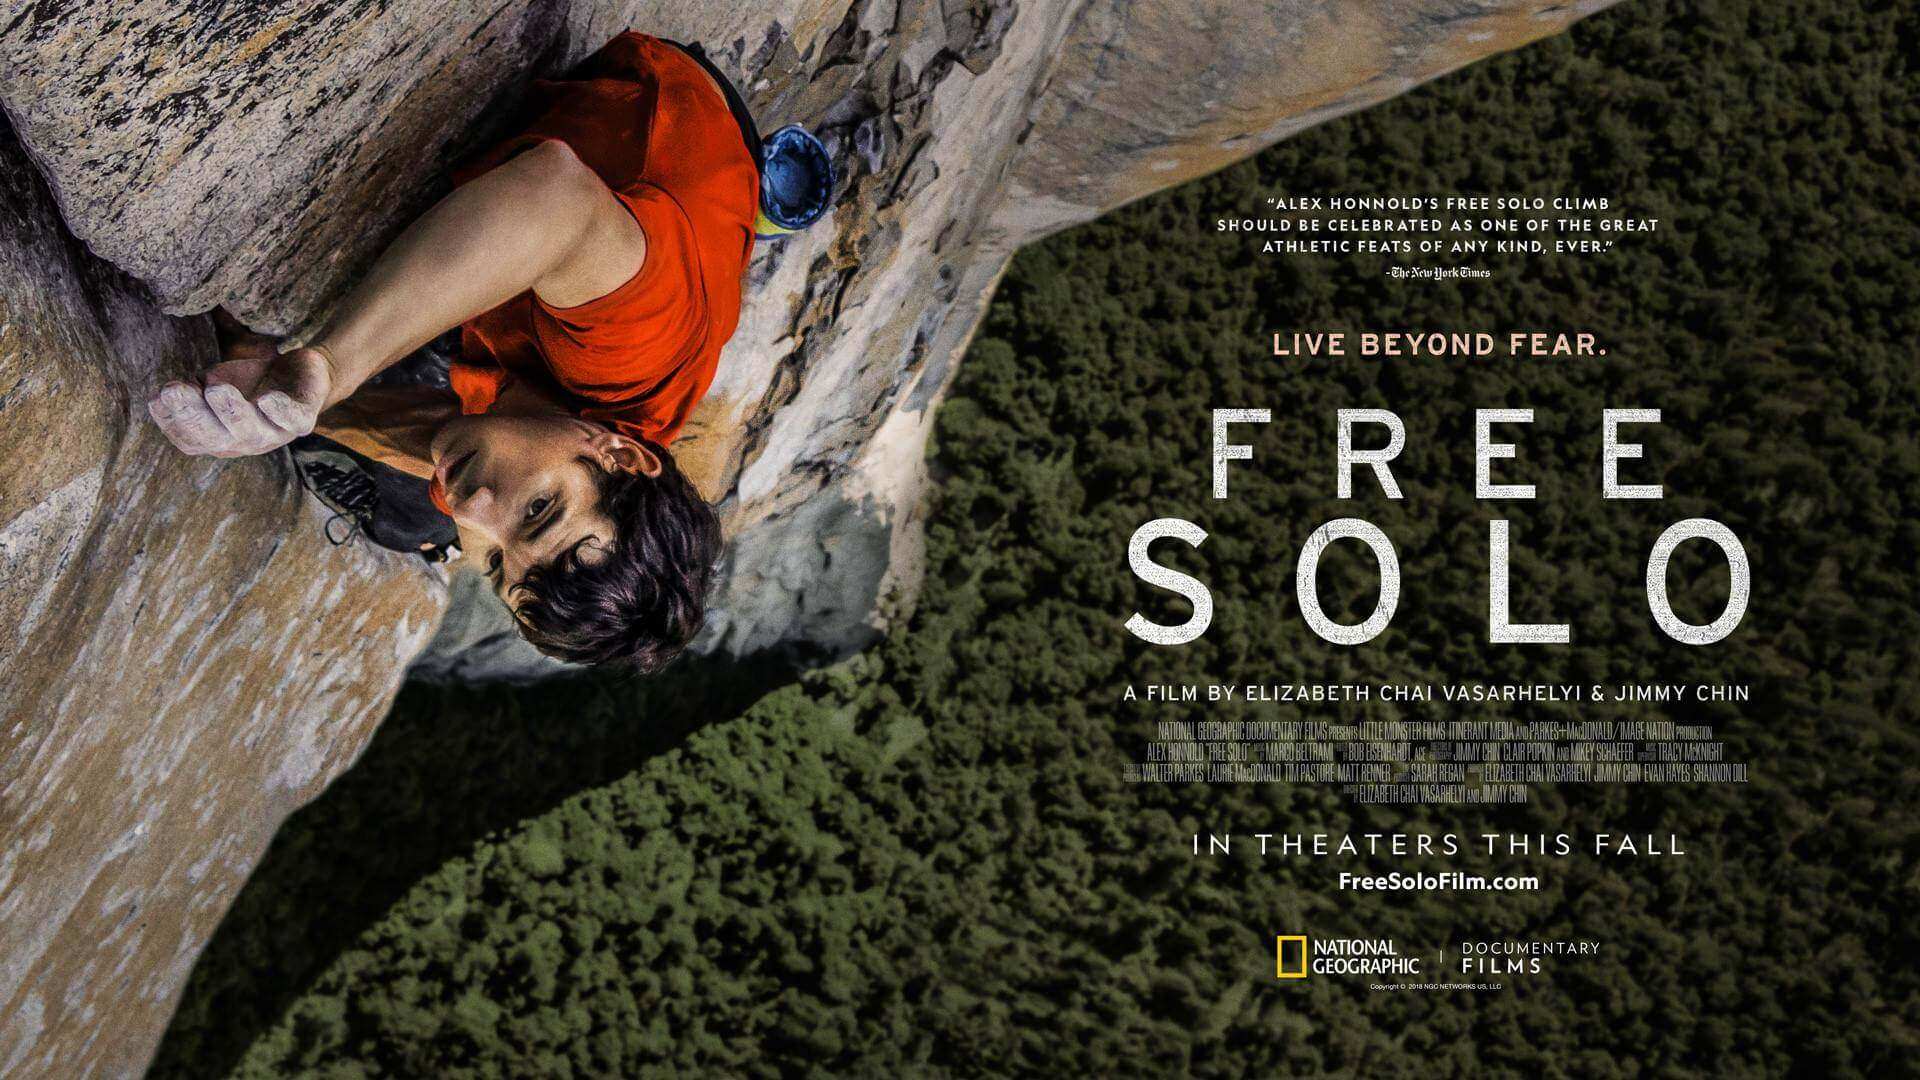 'Free Solo' on Plant-Based Rock Climber Wins Oscar